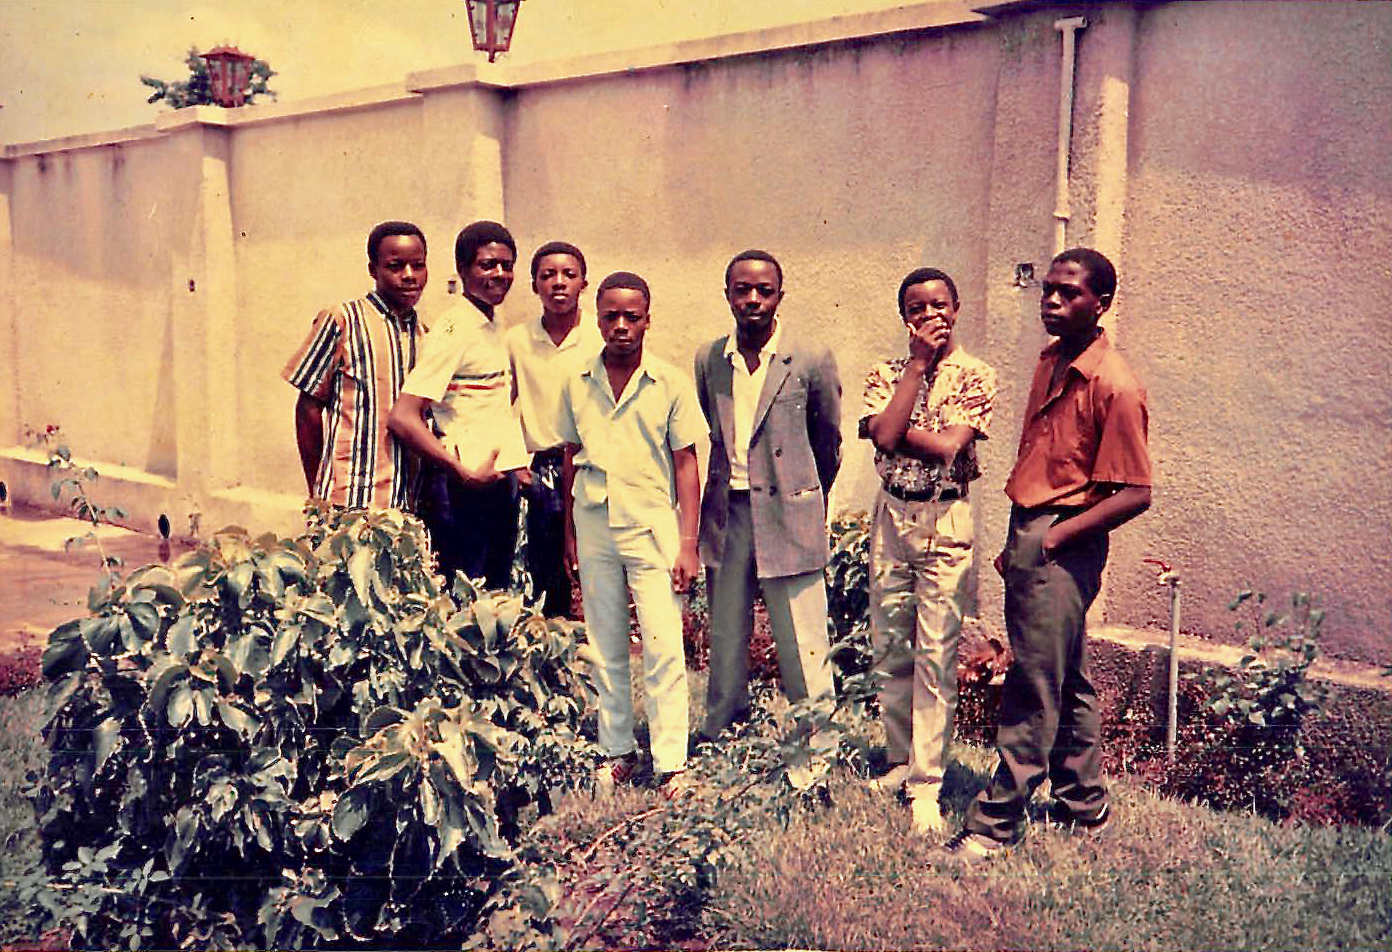 Young men of Liméte Banch in late 1987 in Zaire (now the Democratic Republic of the Congo).